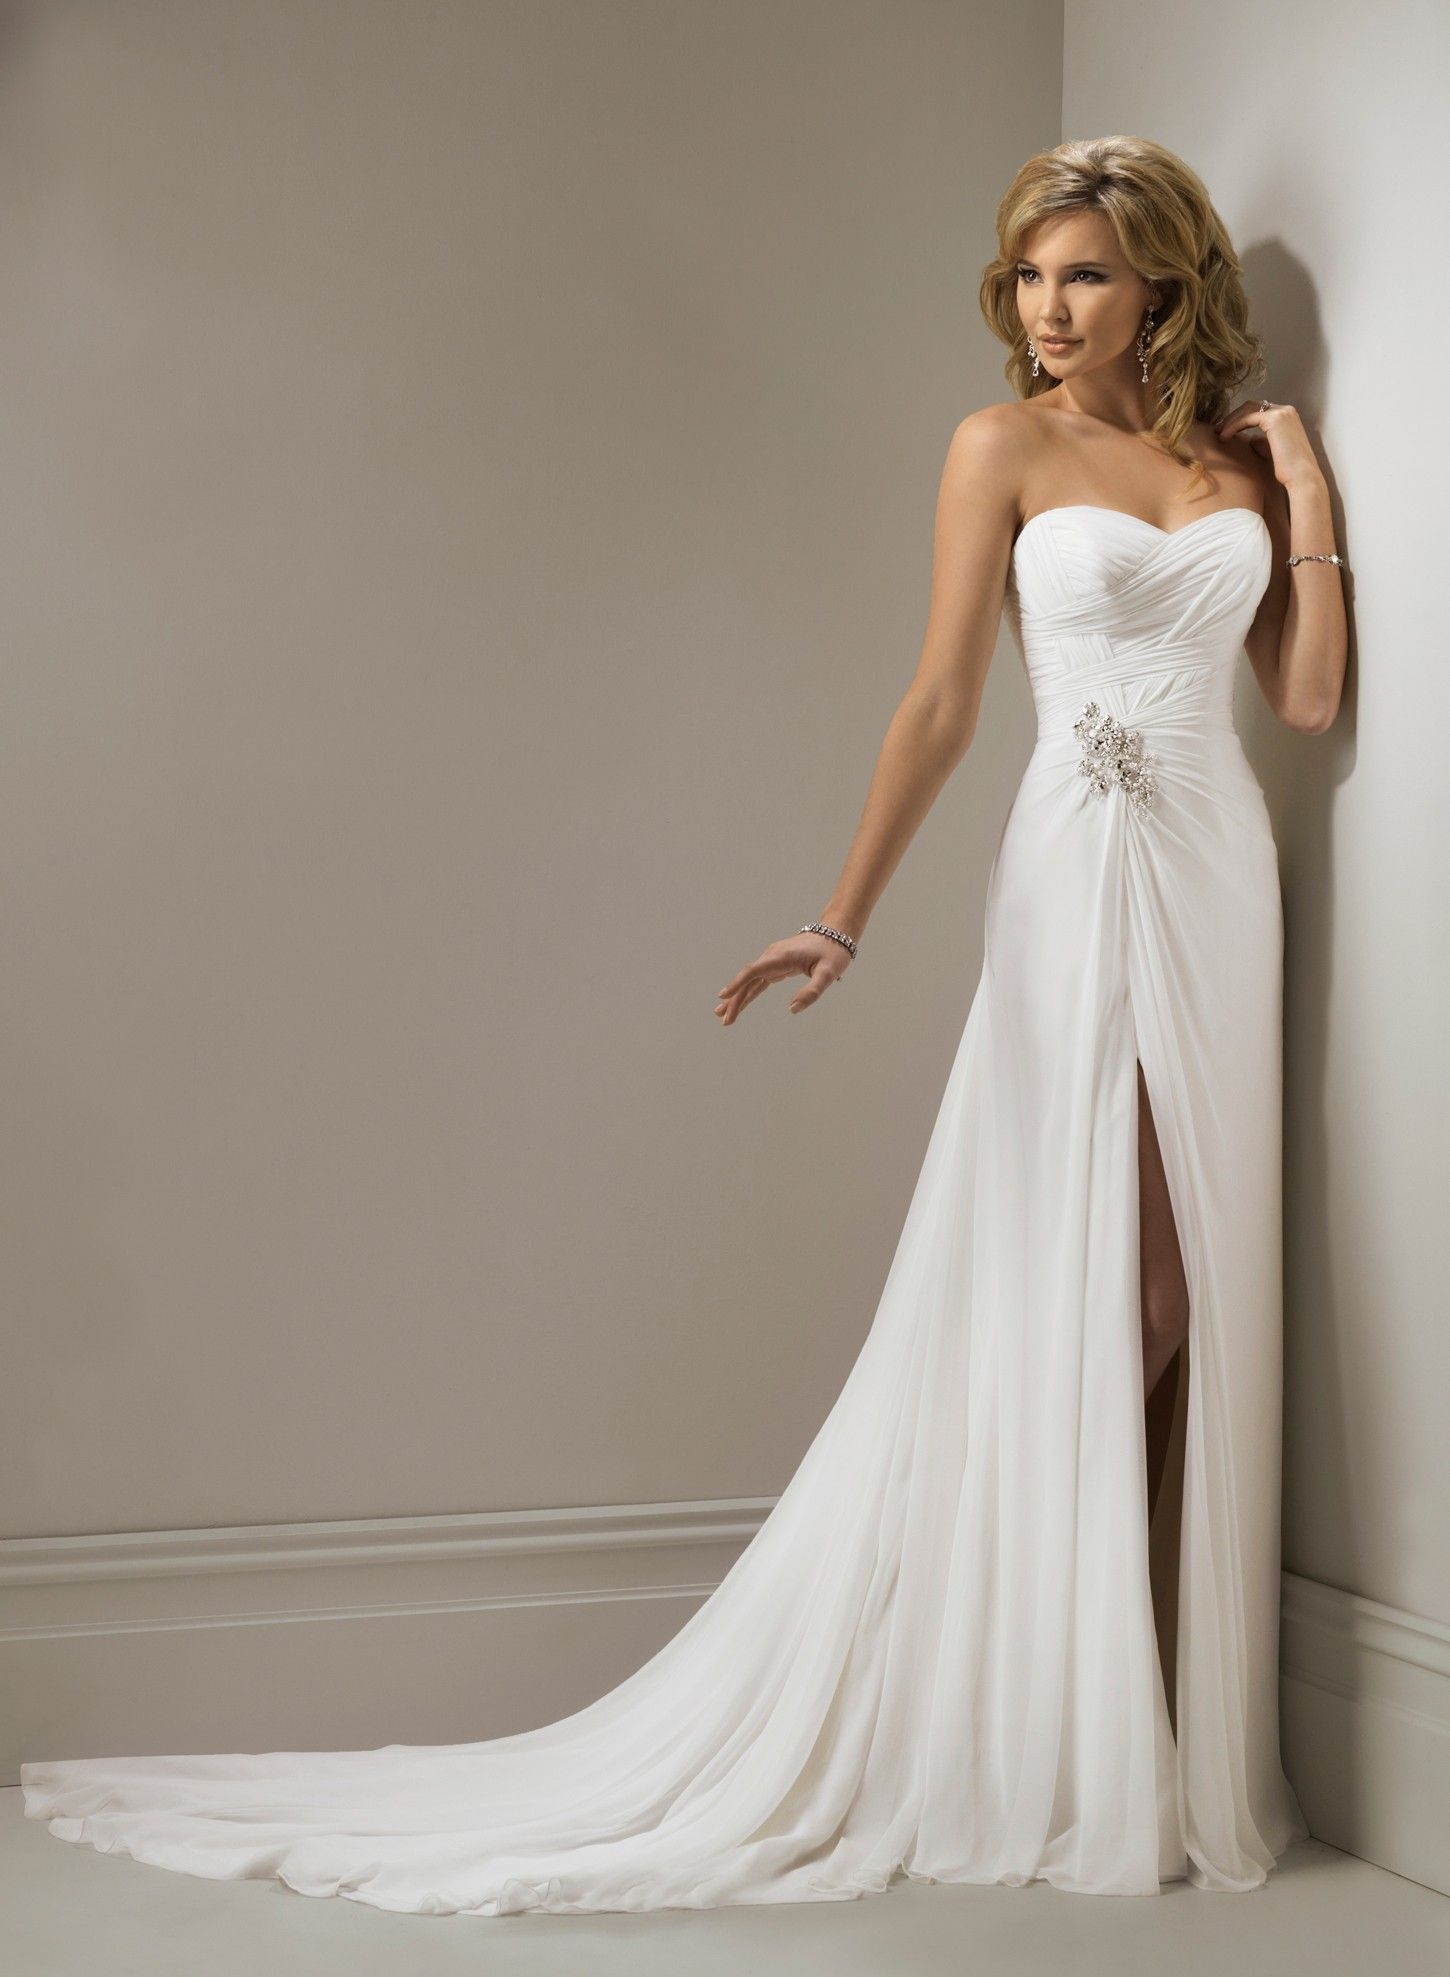 Express your style with aline wedding dresses wedding ideas